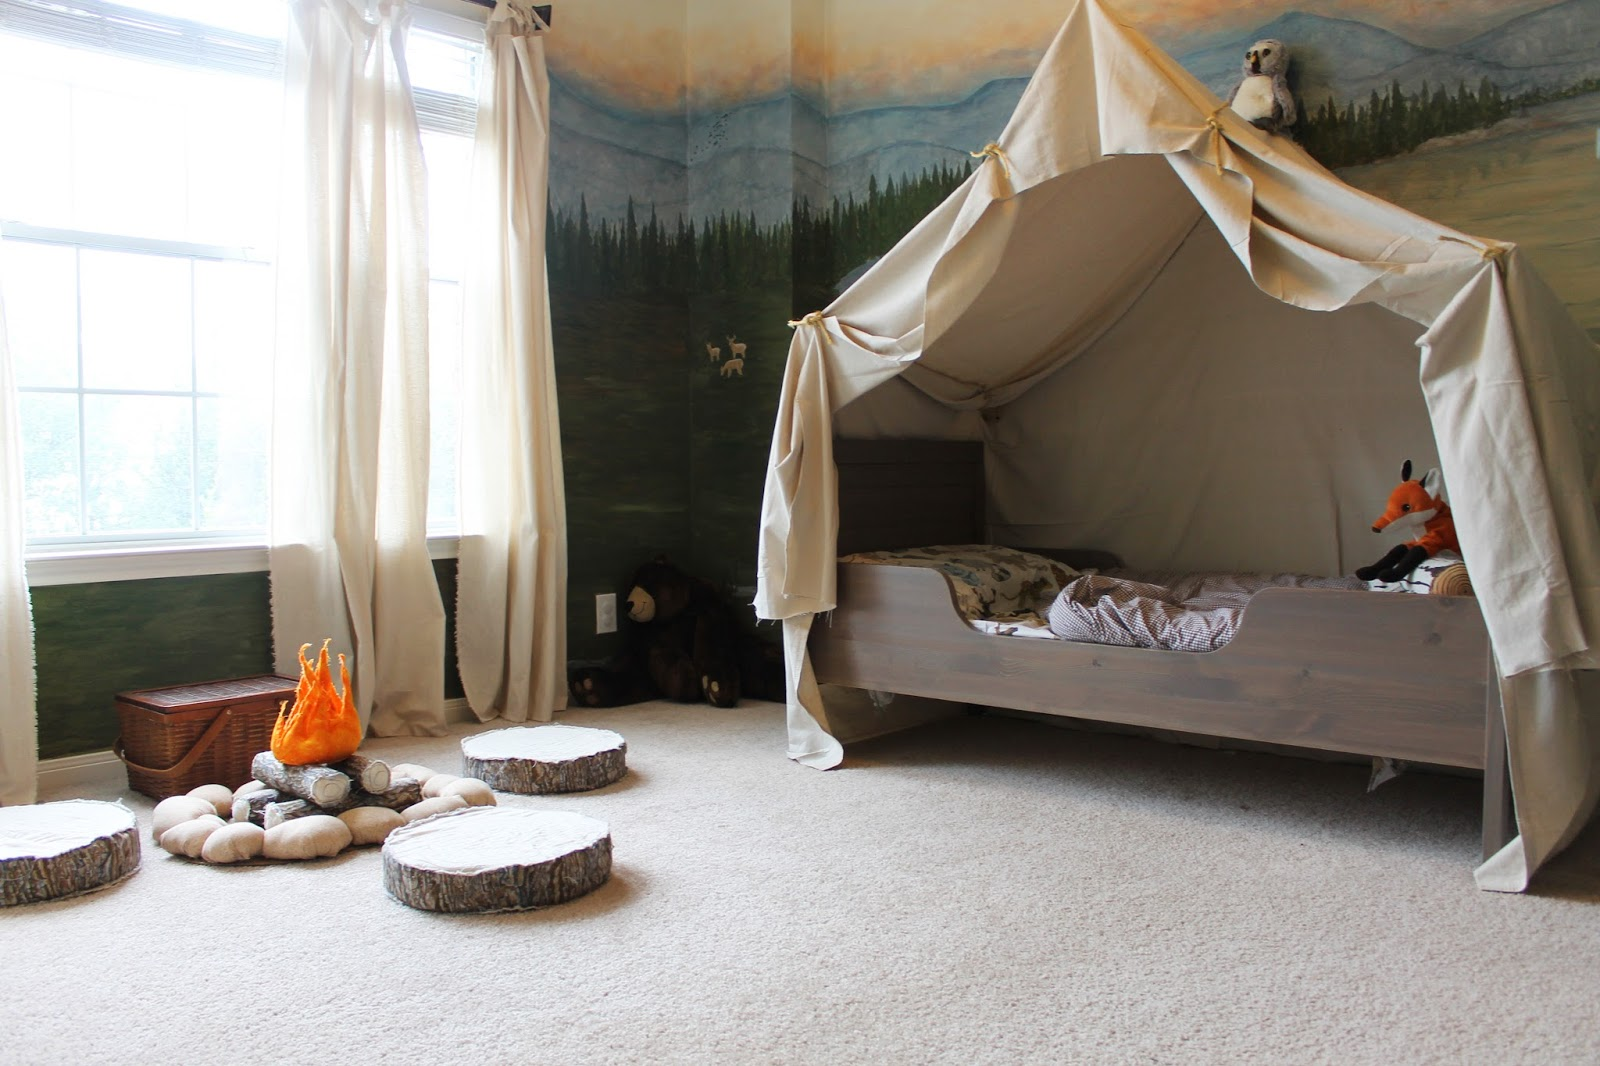 woodland themed kids room with c&ing tent bed and play c&fire The Ragged Wren on & Remodelaholic | Camping Tent Bed in a Kidu0027s Woodland Bedroom